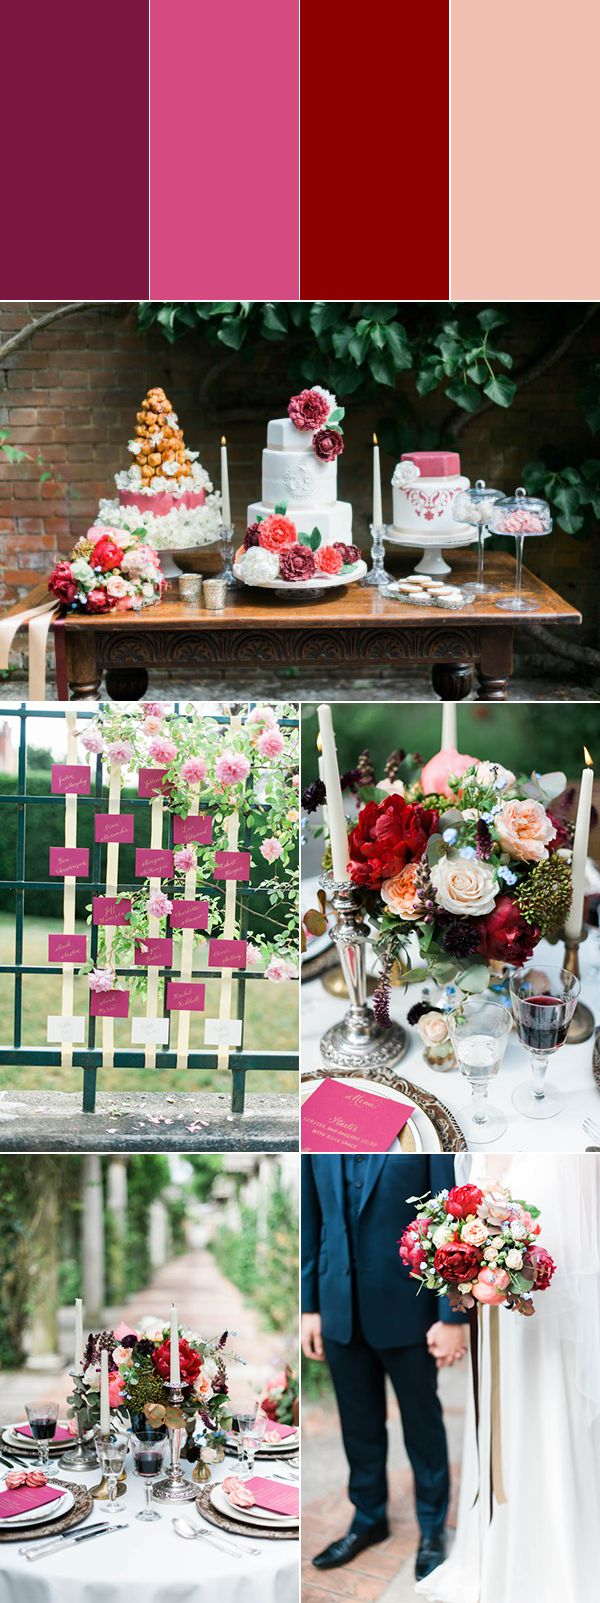 blush-colored wedding captured by Kate Nielen